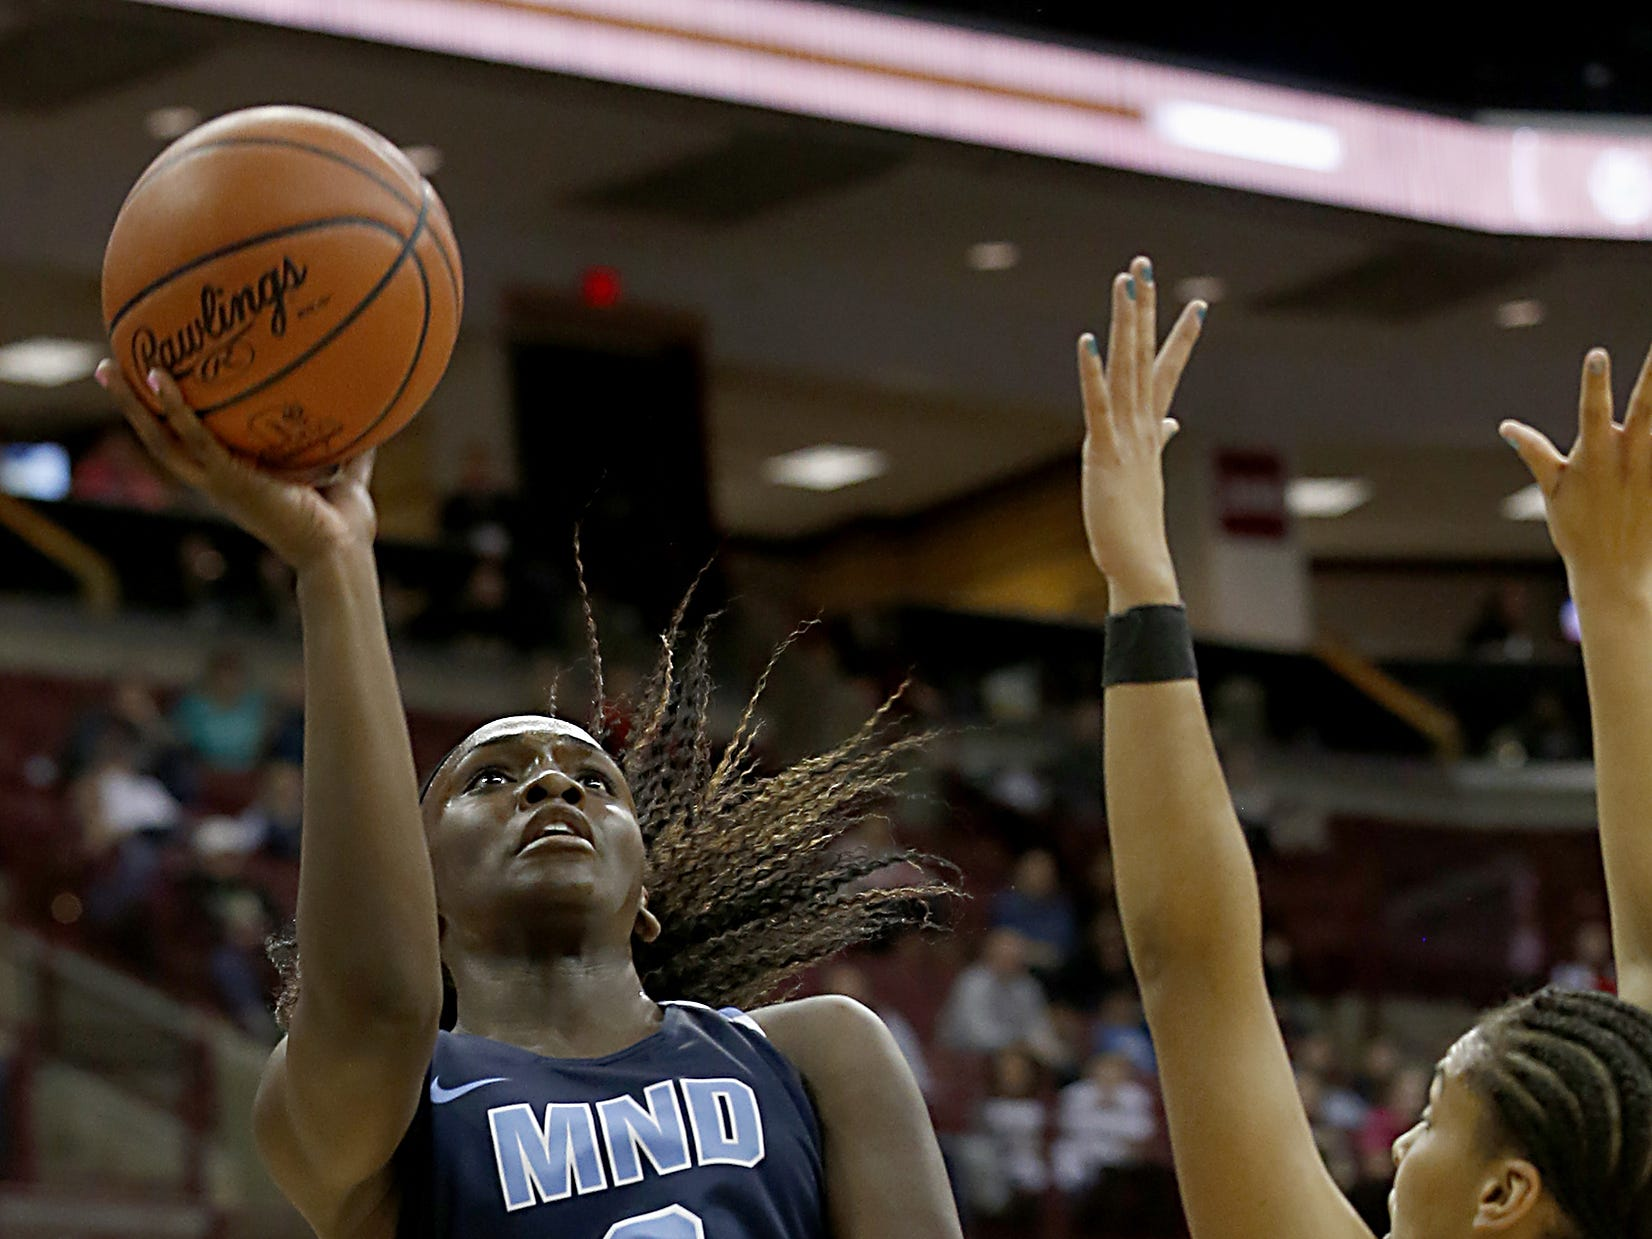 Mount Notre Dame guard K.K. Bransford adds two against GlenOak during their Division I semifinal game in the 44th Annual State Girls Basketball Tournament at the Schottenstein Center in Columbus Friday, March 15, 2019.